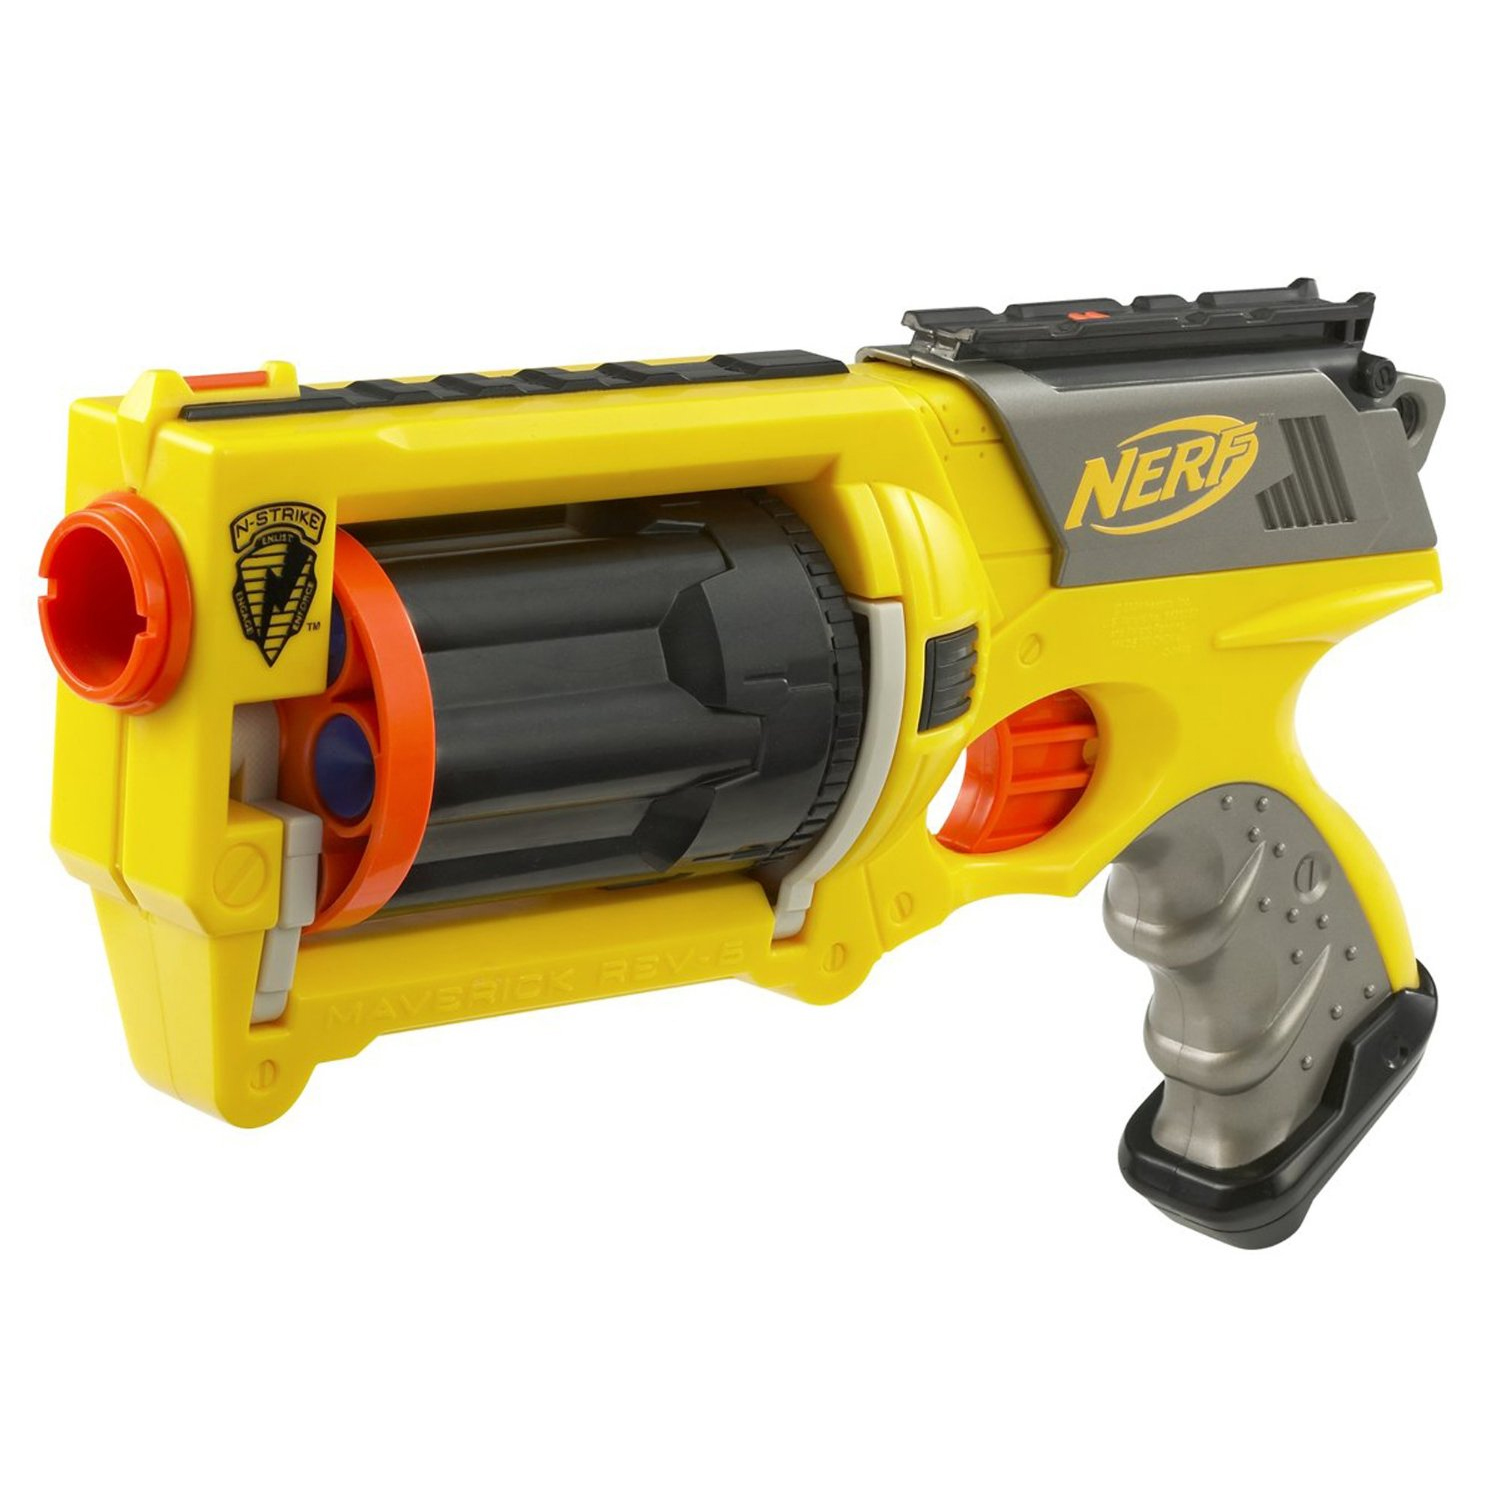 [ IMG] This is the Classic Nerf gun.